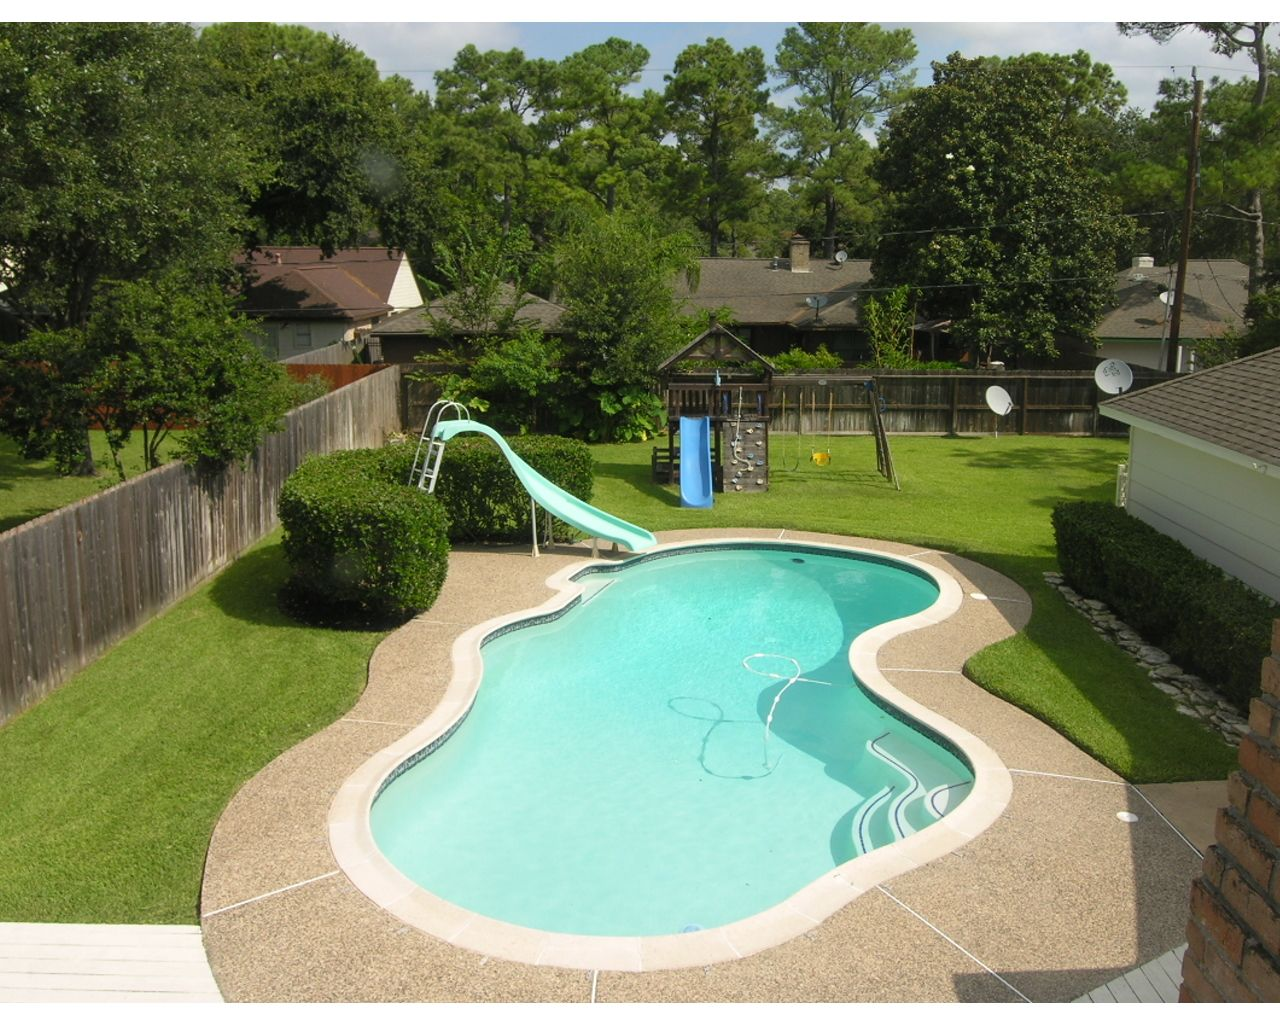 Backyard pools great view of large backyard pool but - Swimming pools for small backyards ...